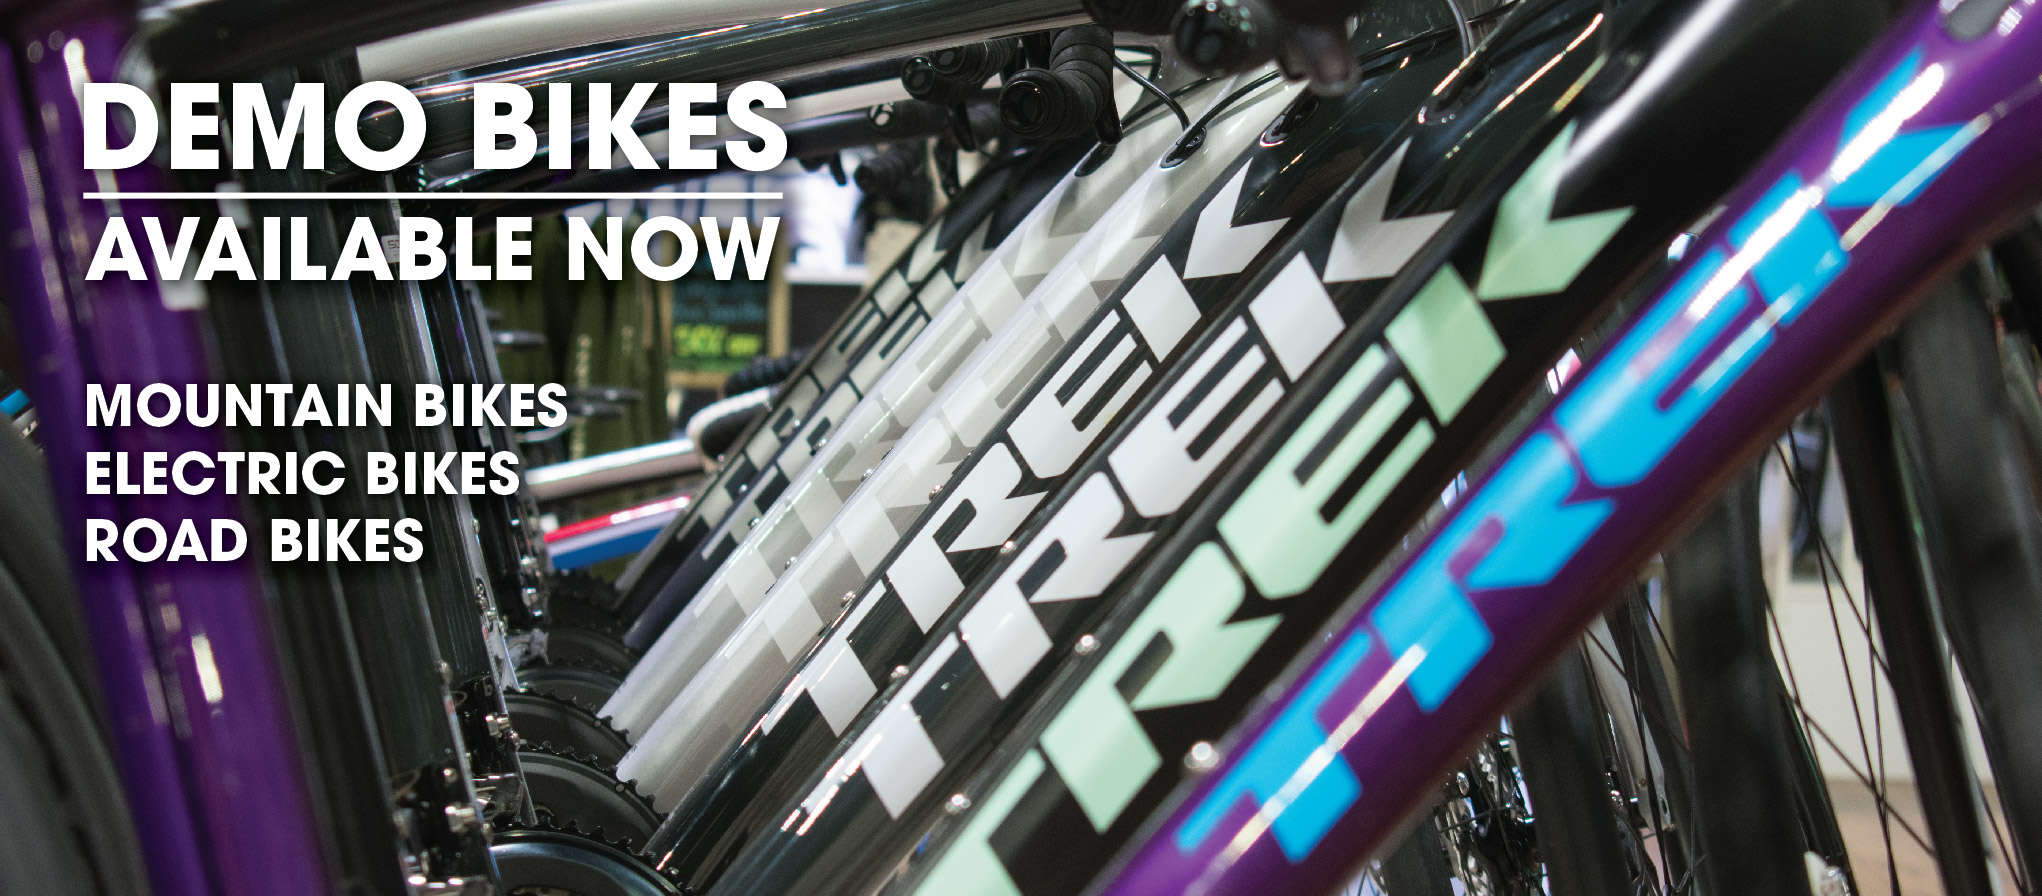 Demo bikes available now. Mountain, Electric and Road bikes